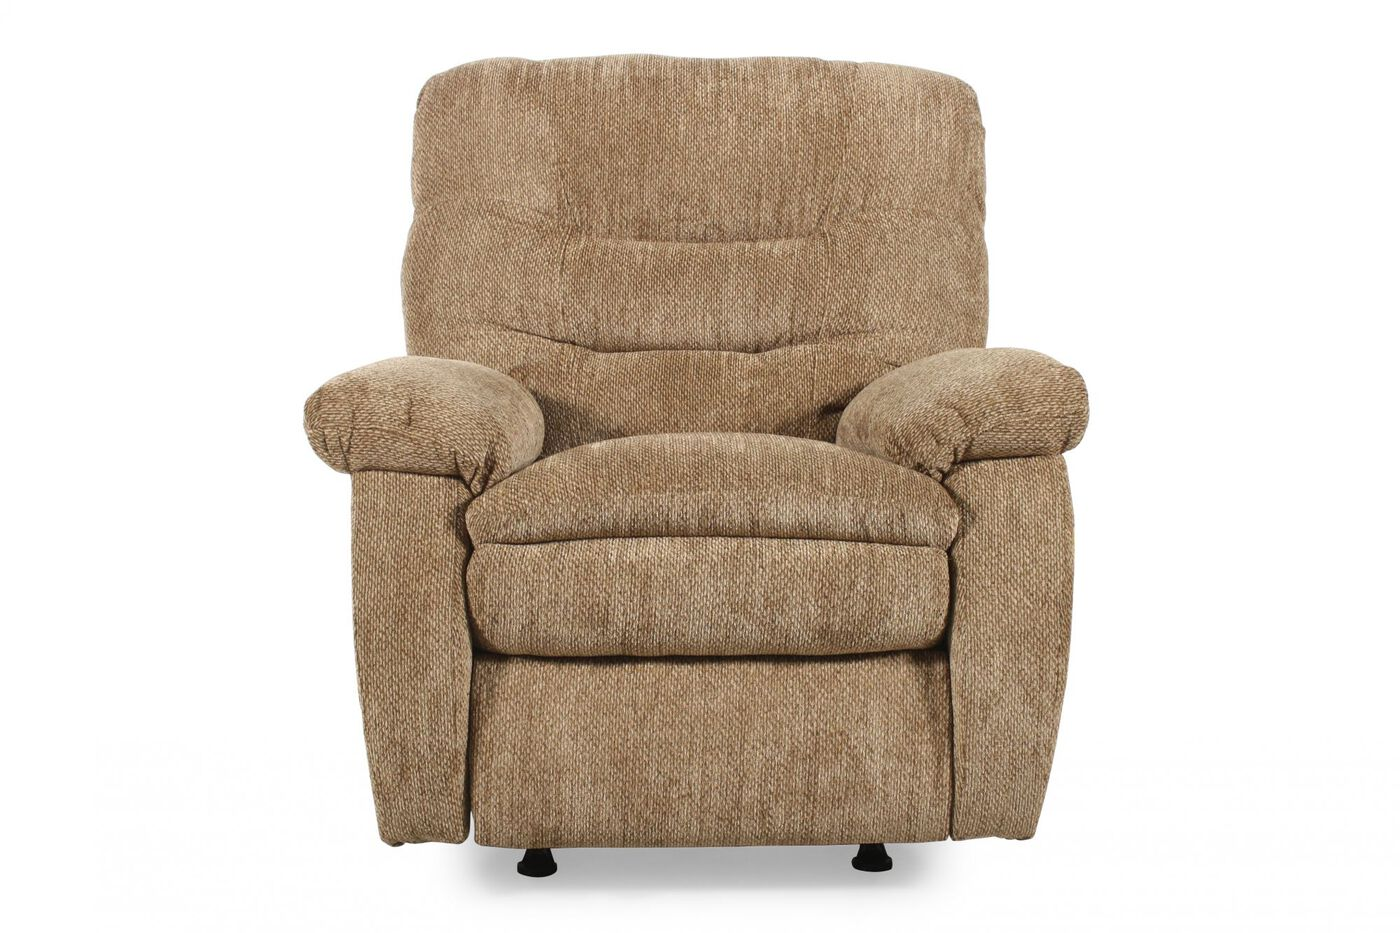 Lane zero gravity laredo tan rocker recliner mathis brothers furniture for Living room with two recliners